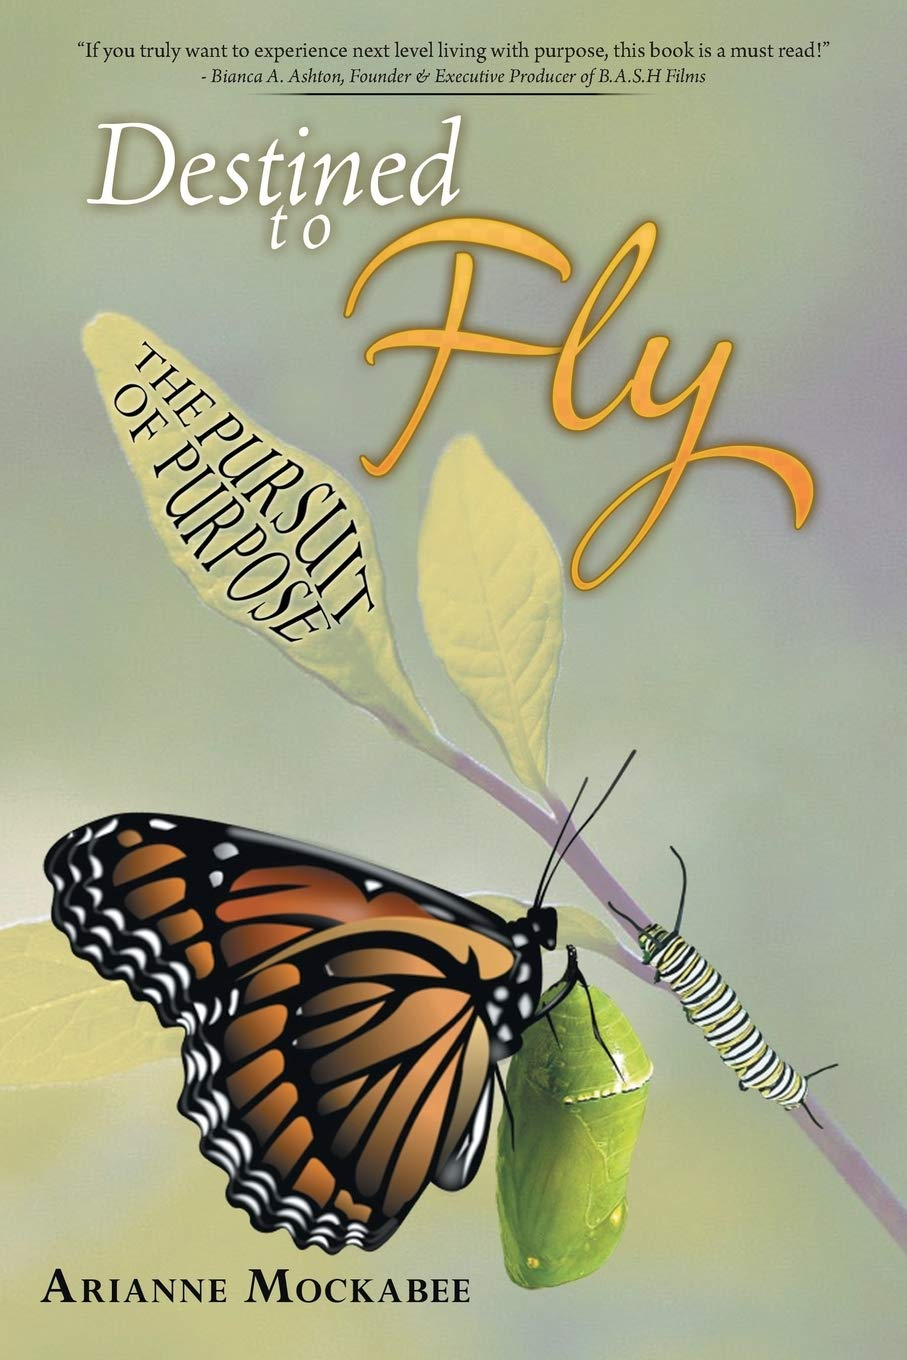 Cover art for Arianne Mockabee's book Destined to Fly